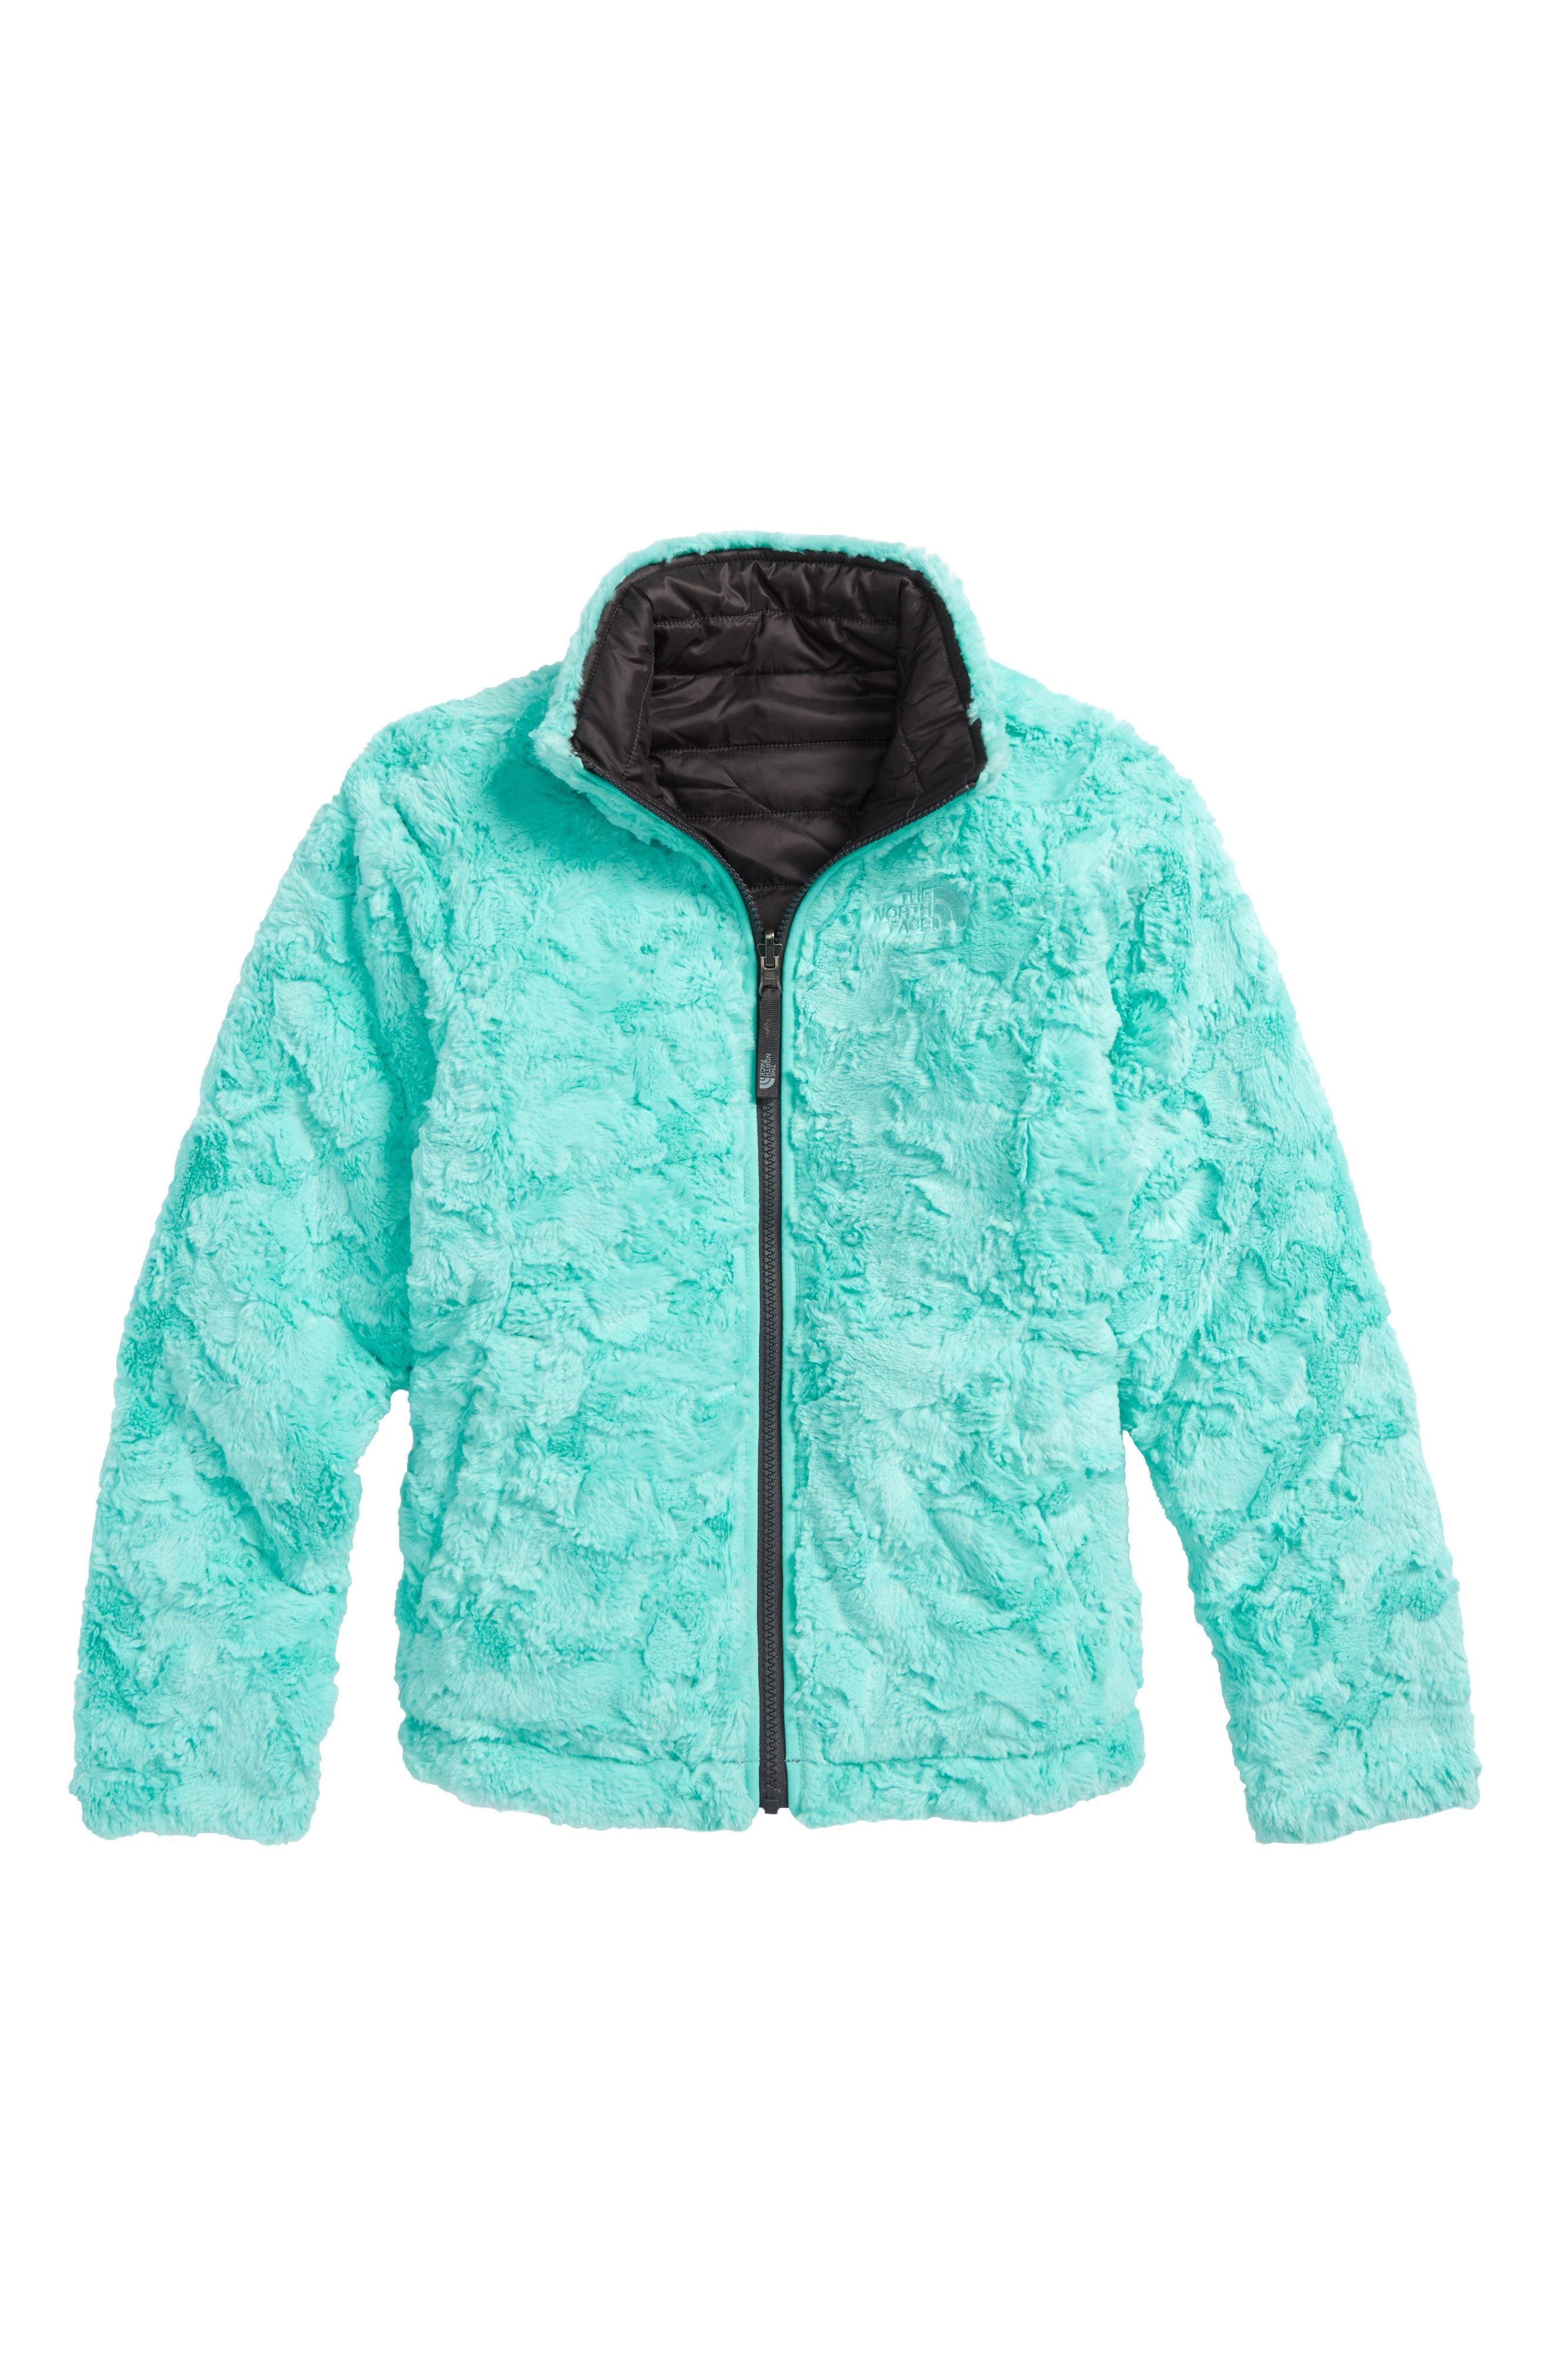 THE NORTH FACE, Mossbud Swirl Reversible Water Repellent Jacket, Alternate thumbnail 2, color, 021